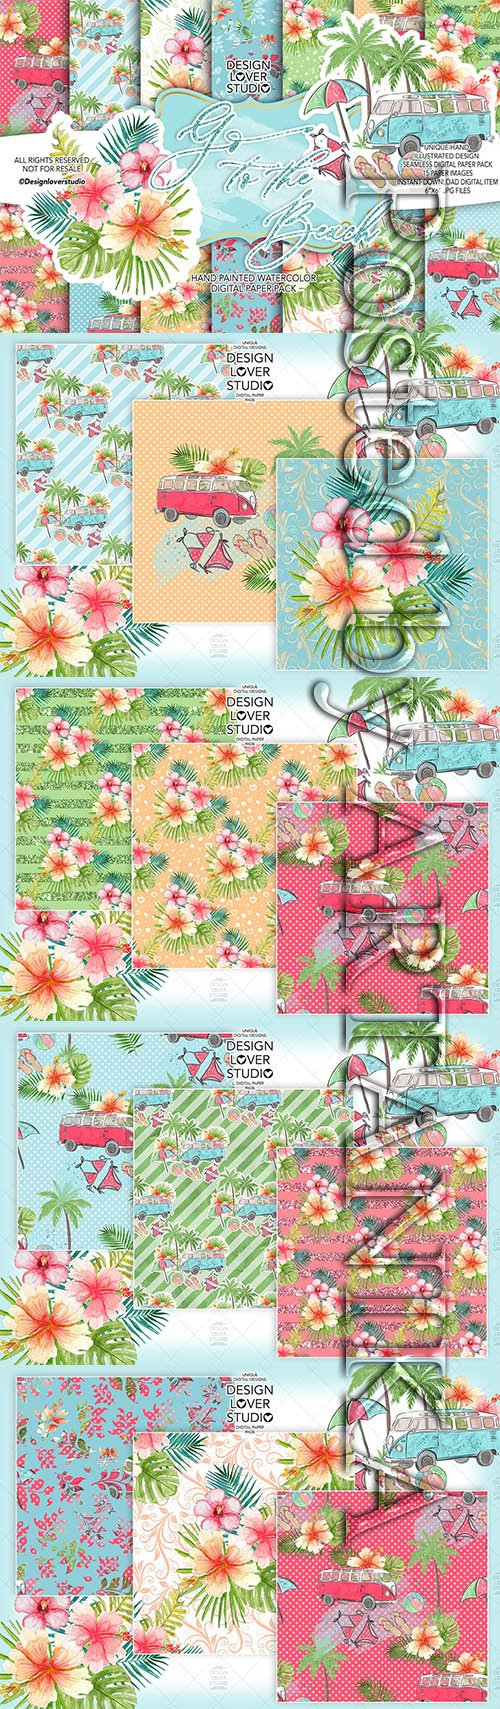 Go to the Beach digital paper pack